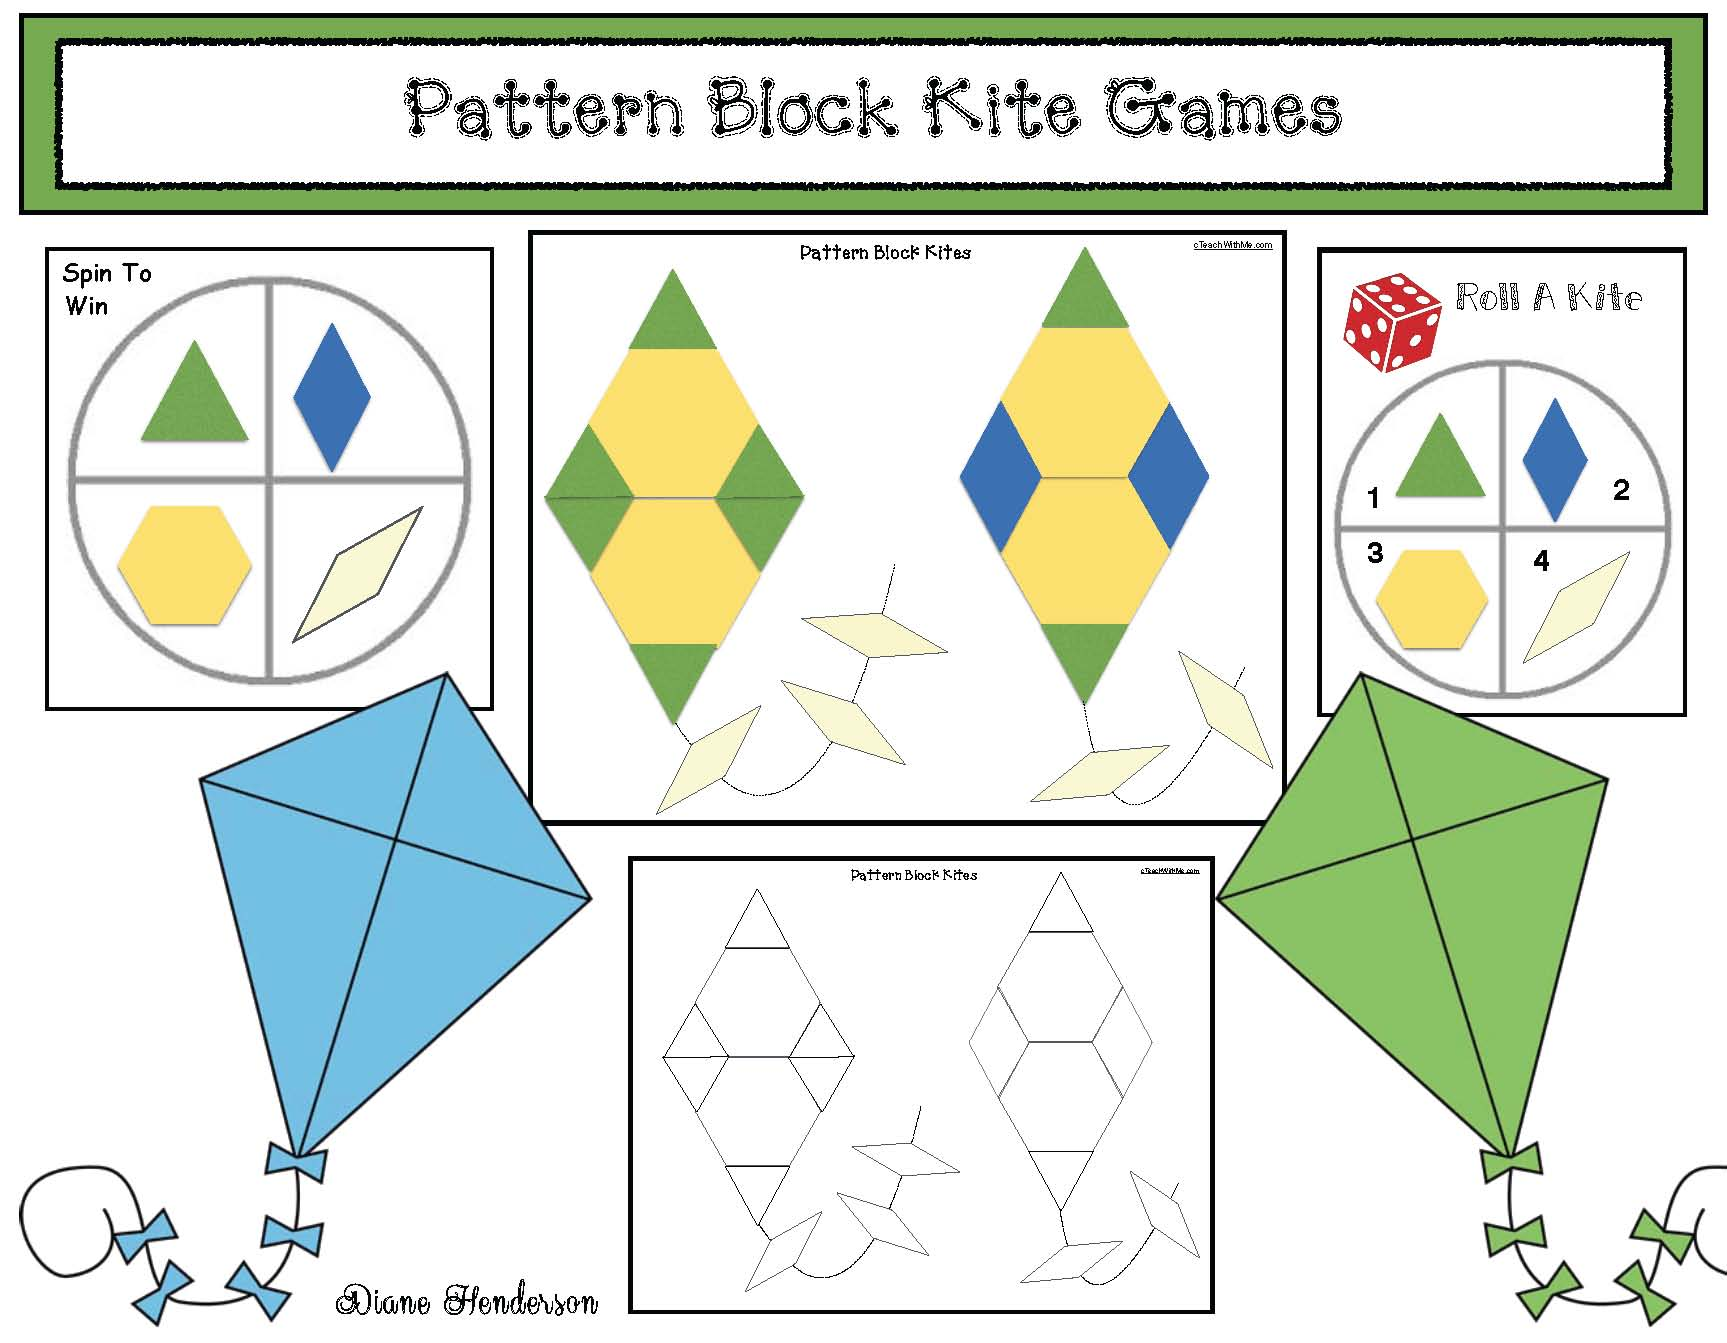 3D shapes, 3D shape activities, 3D shape posters, 3D shape photographs, kite activities, emergent readers for spring, pattern block activities, pattern block centers, synonym activities, ordinal number activities